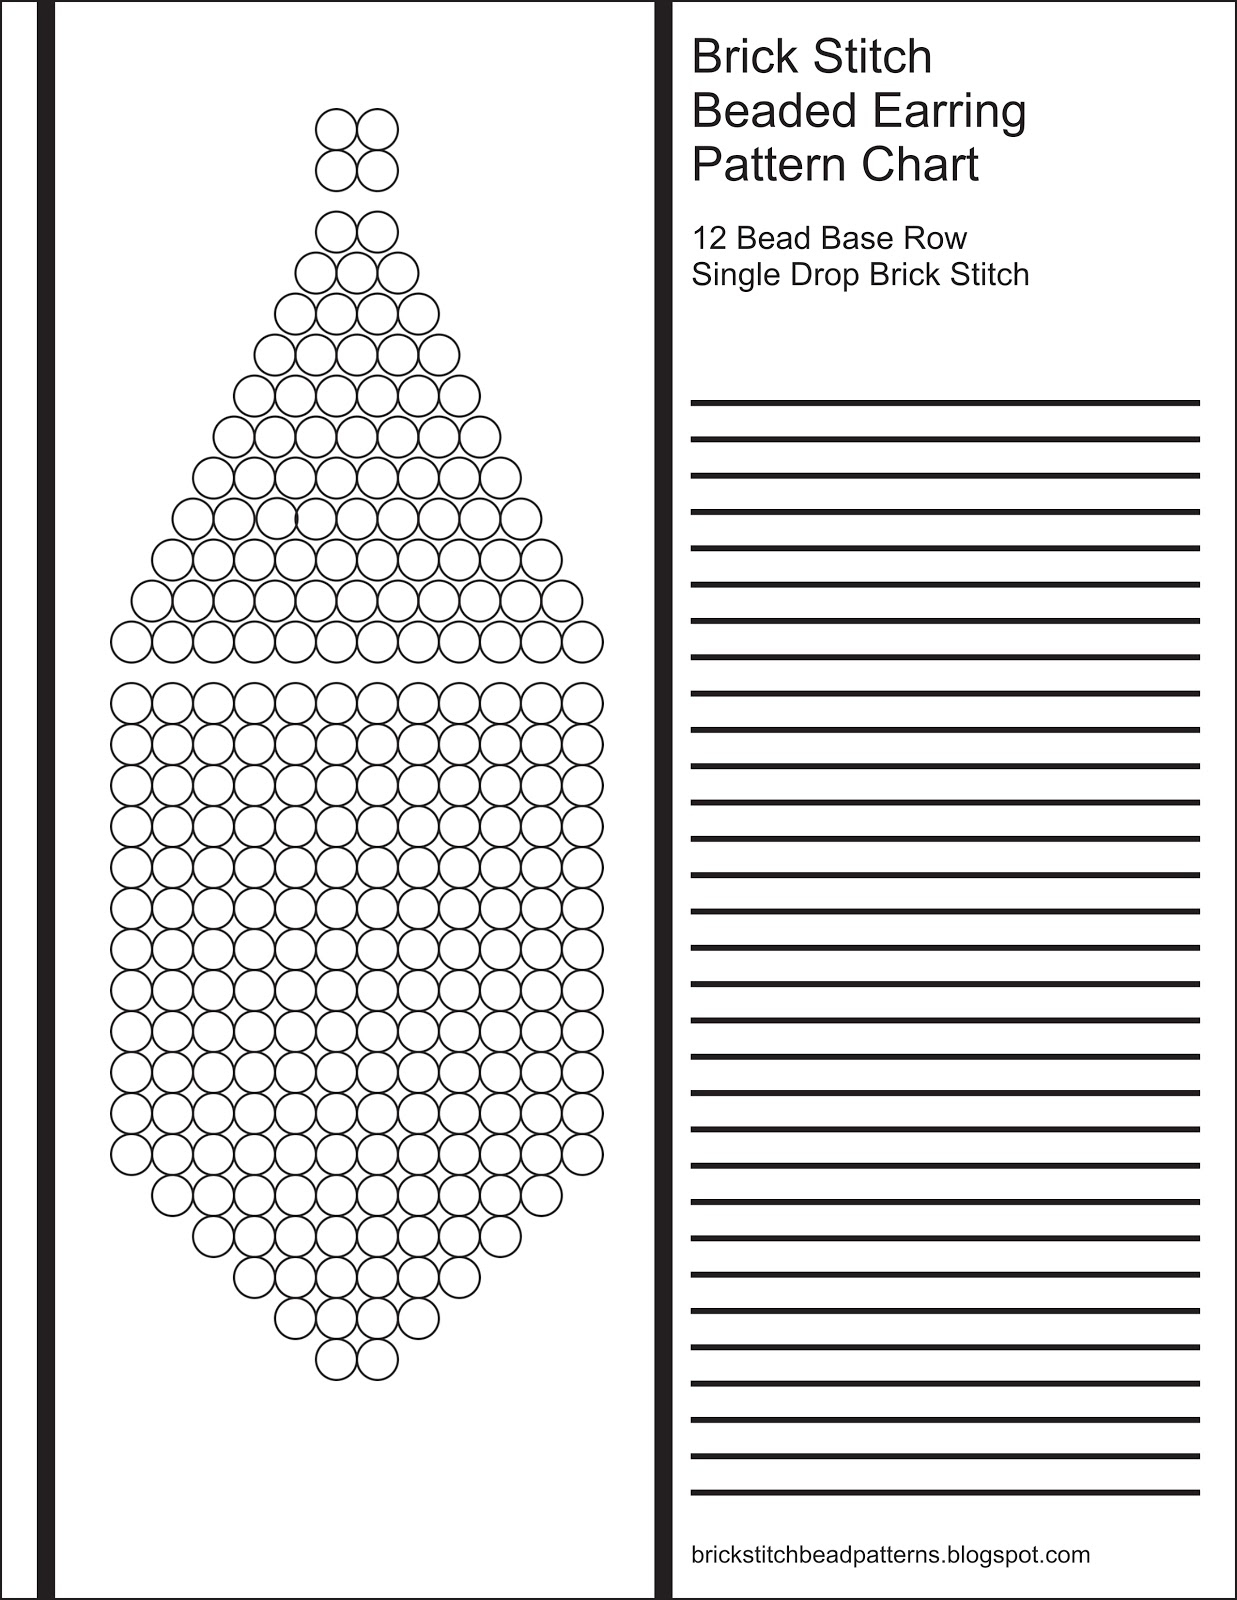 Brick Stitch Bead Patterns Journal: 12 Bead Base Row Blank Round - Free Printable Native American Beading Patterns